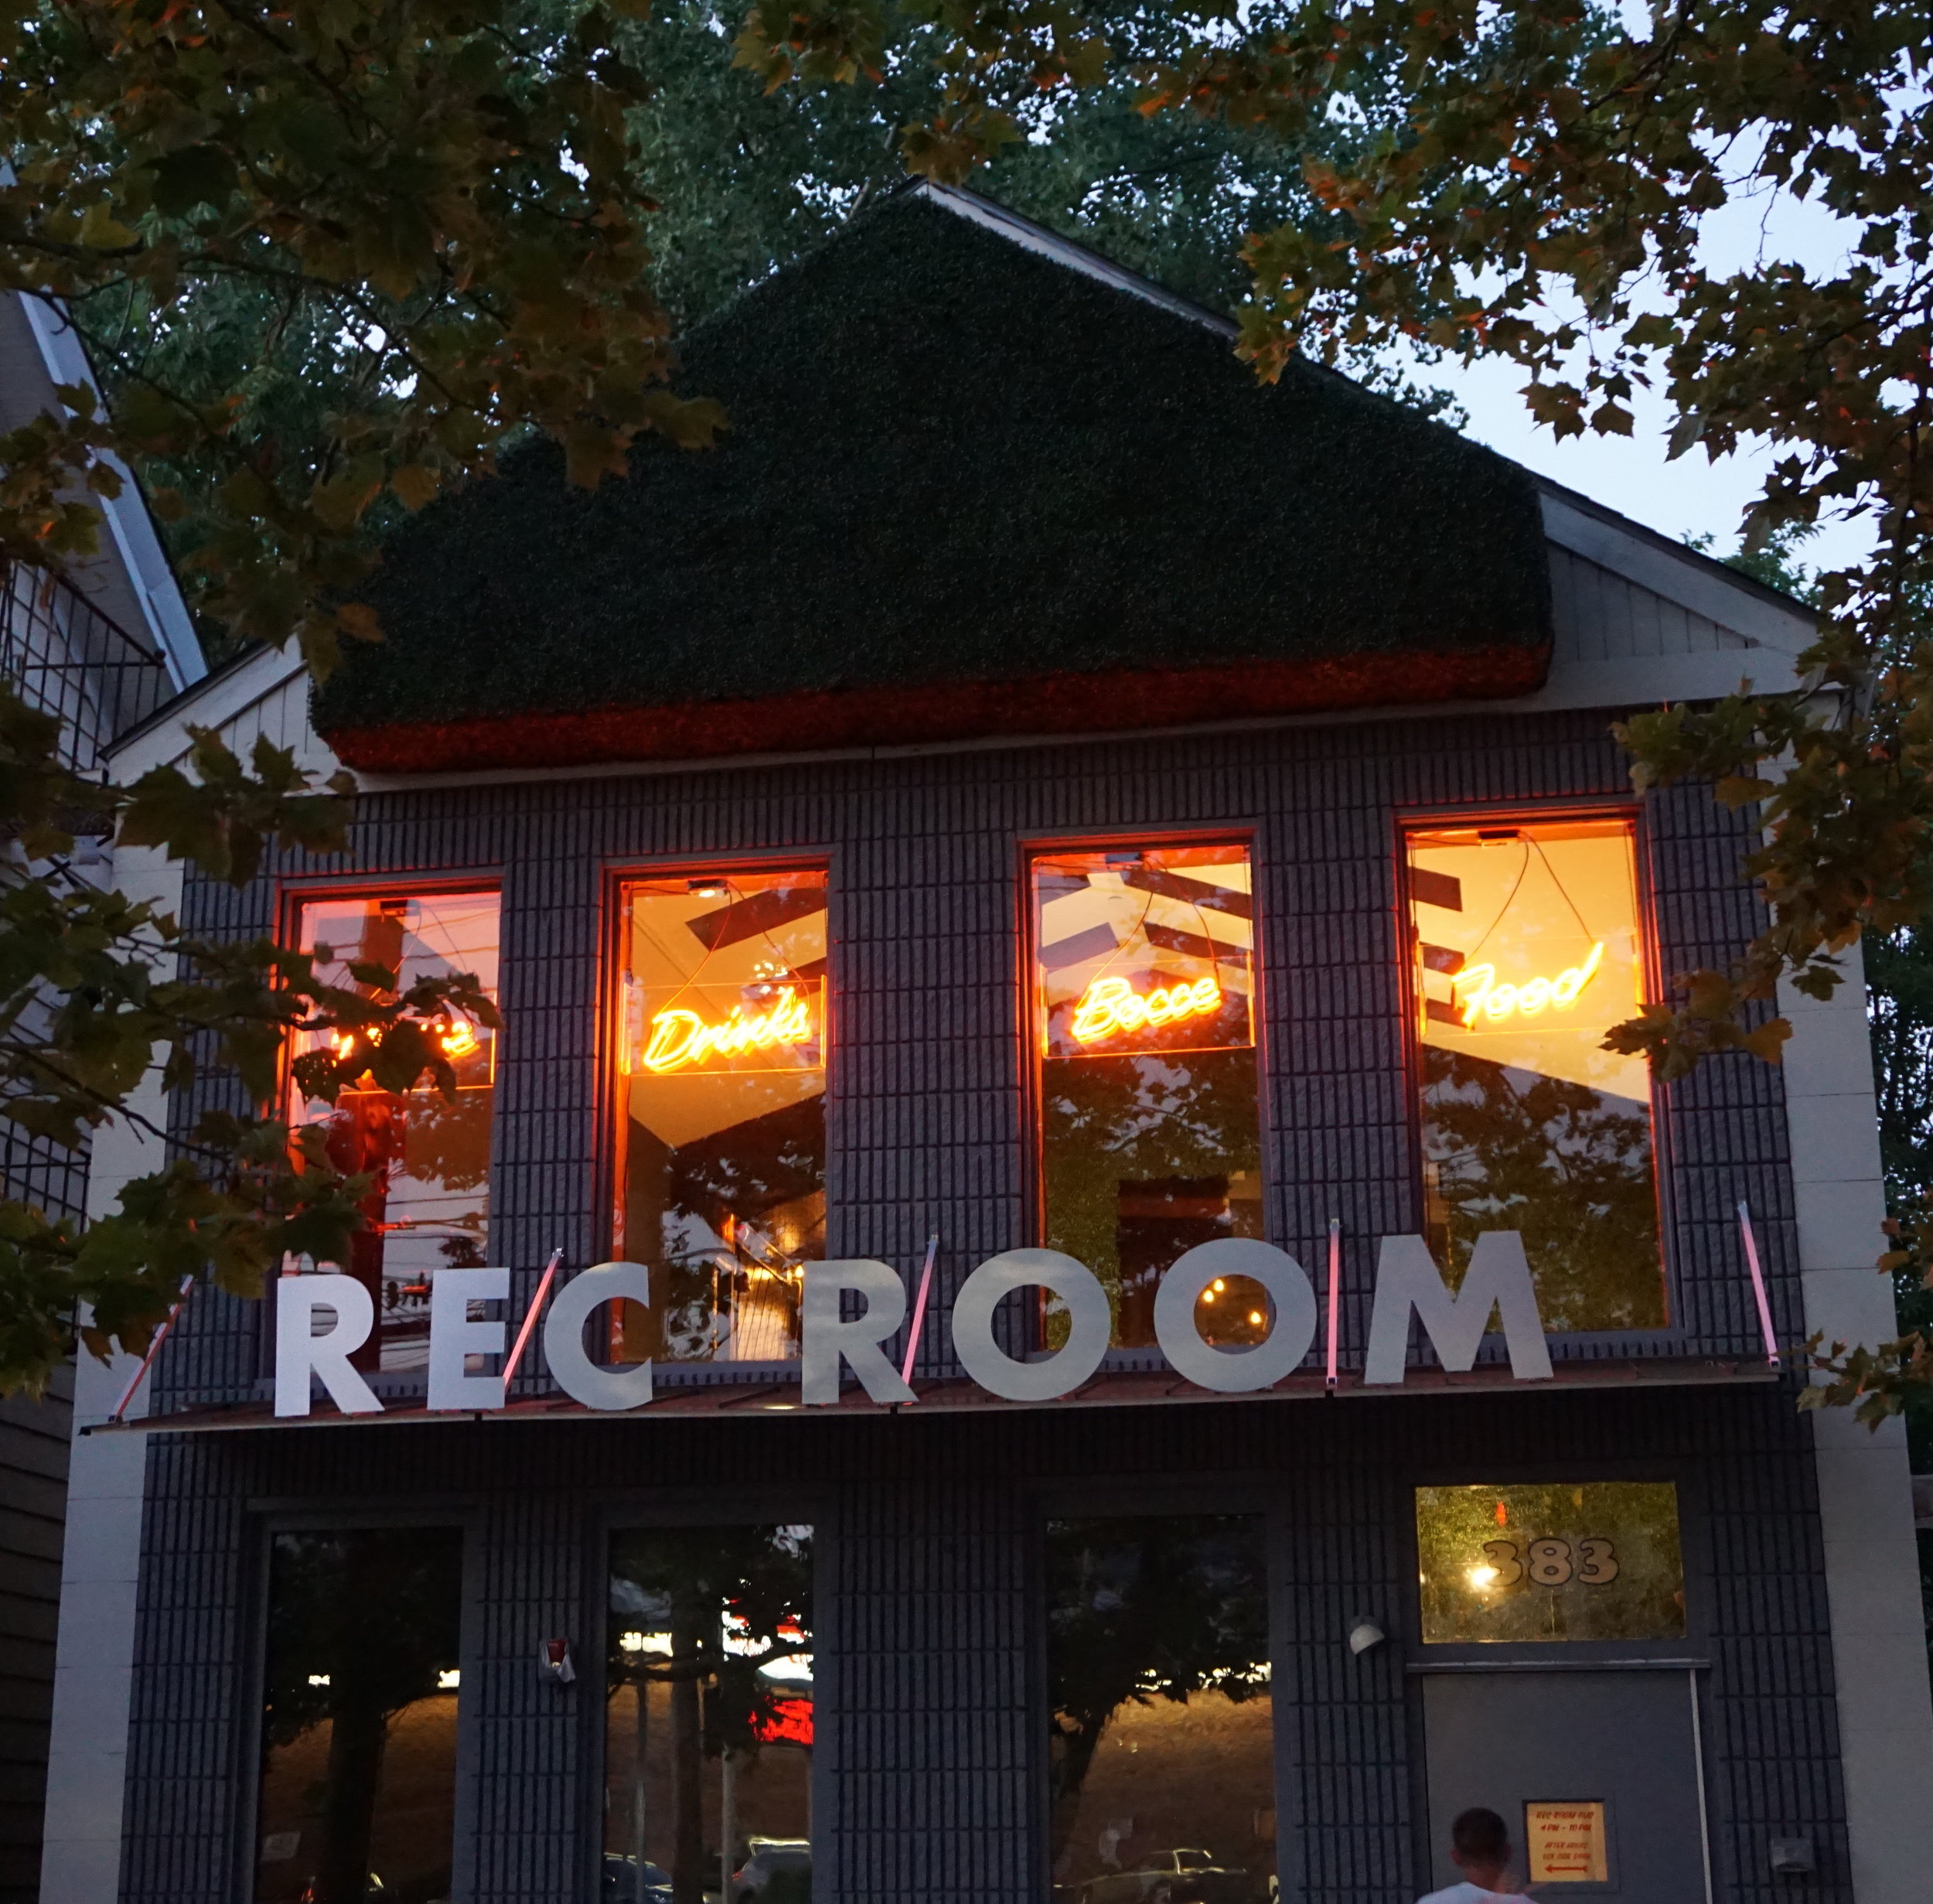 Rec Room   Branding, Exterior Painting, Sign Design,Fabrication, Handpainting